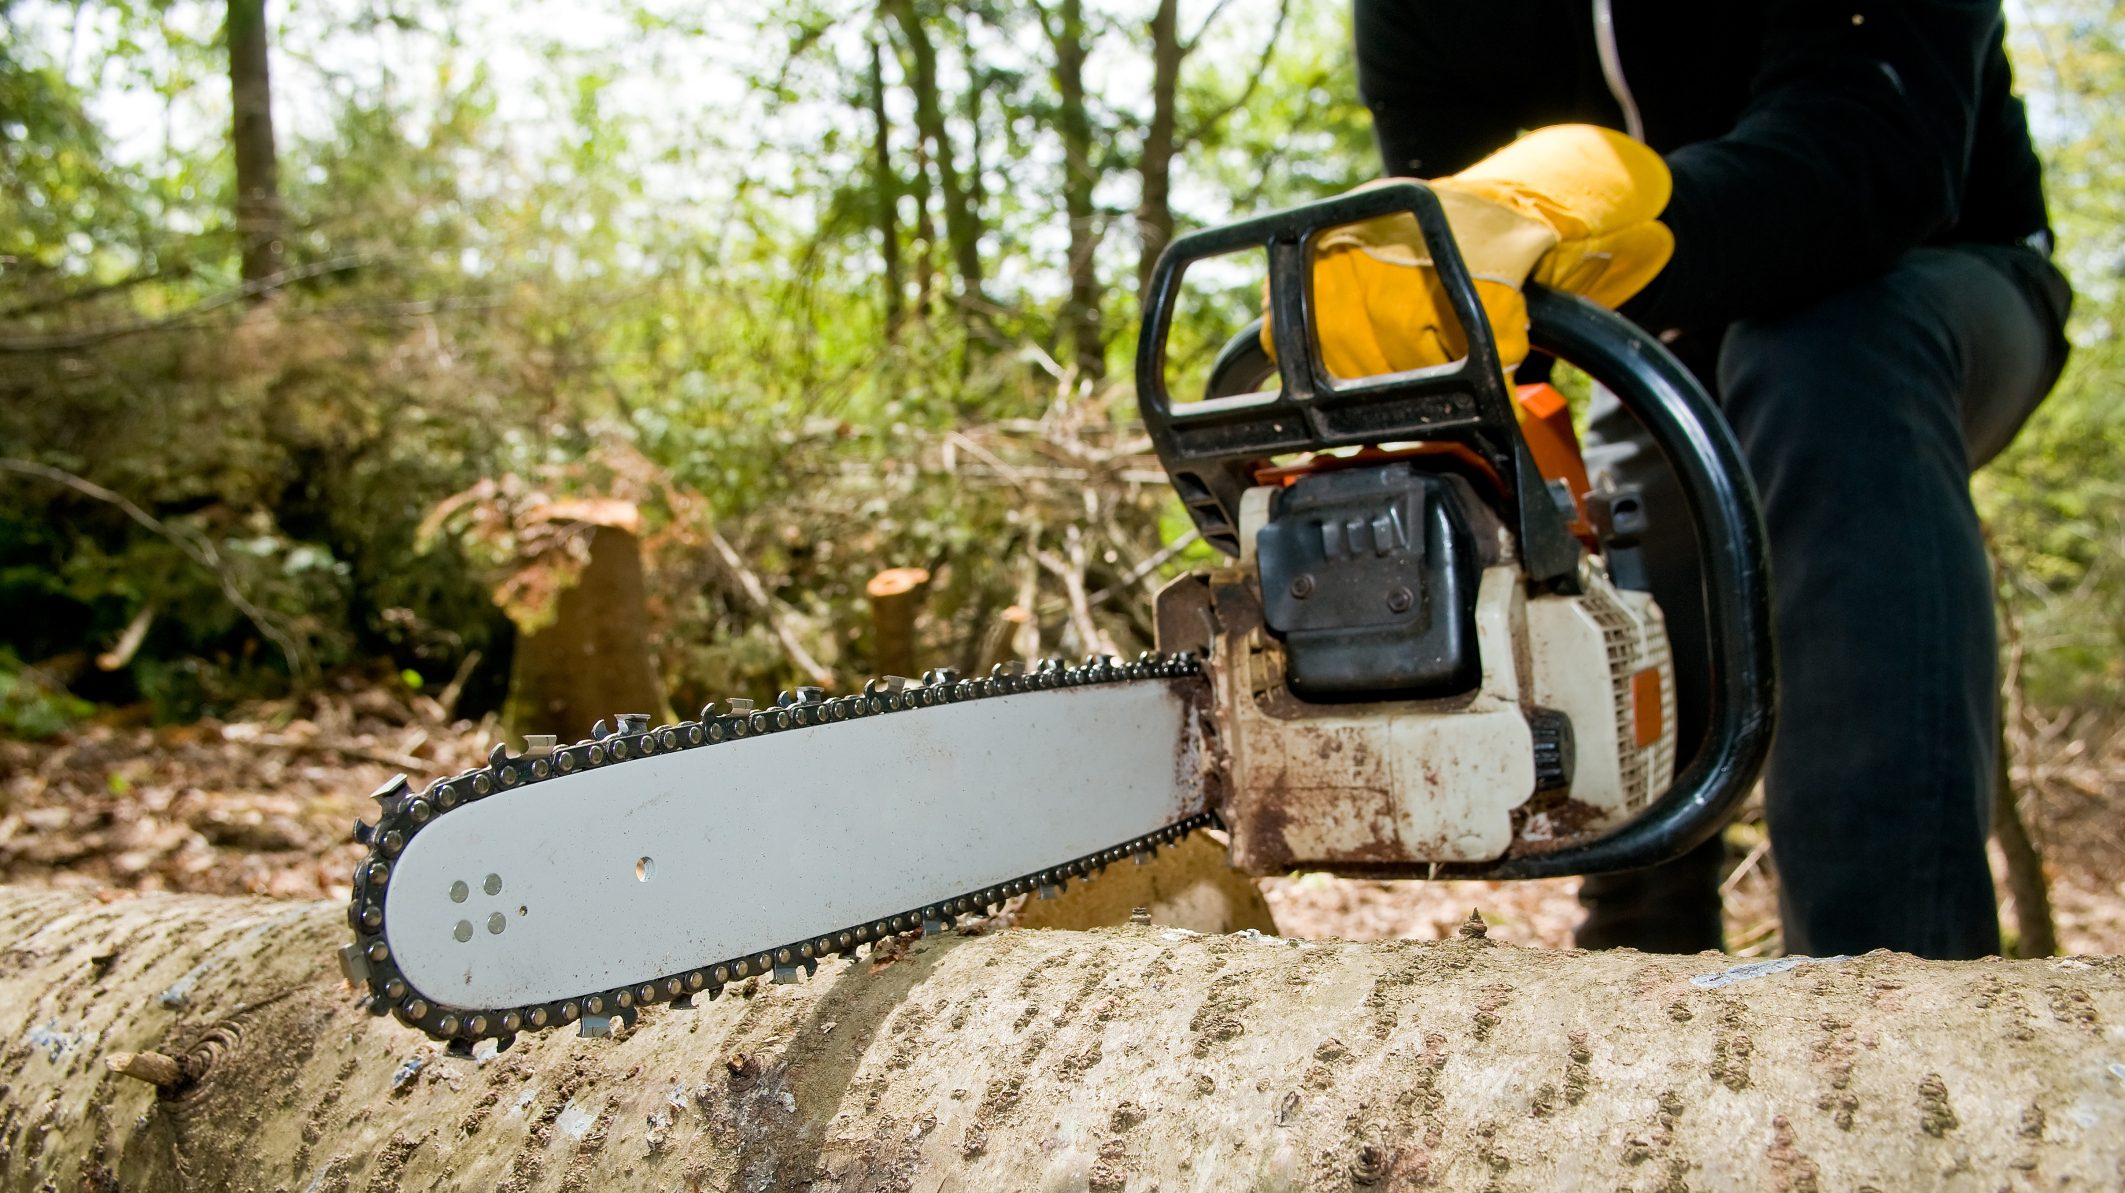 Tree Removal & Lawn Services - Just another WordPress site